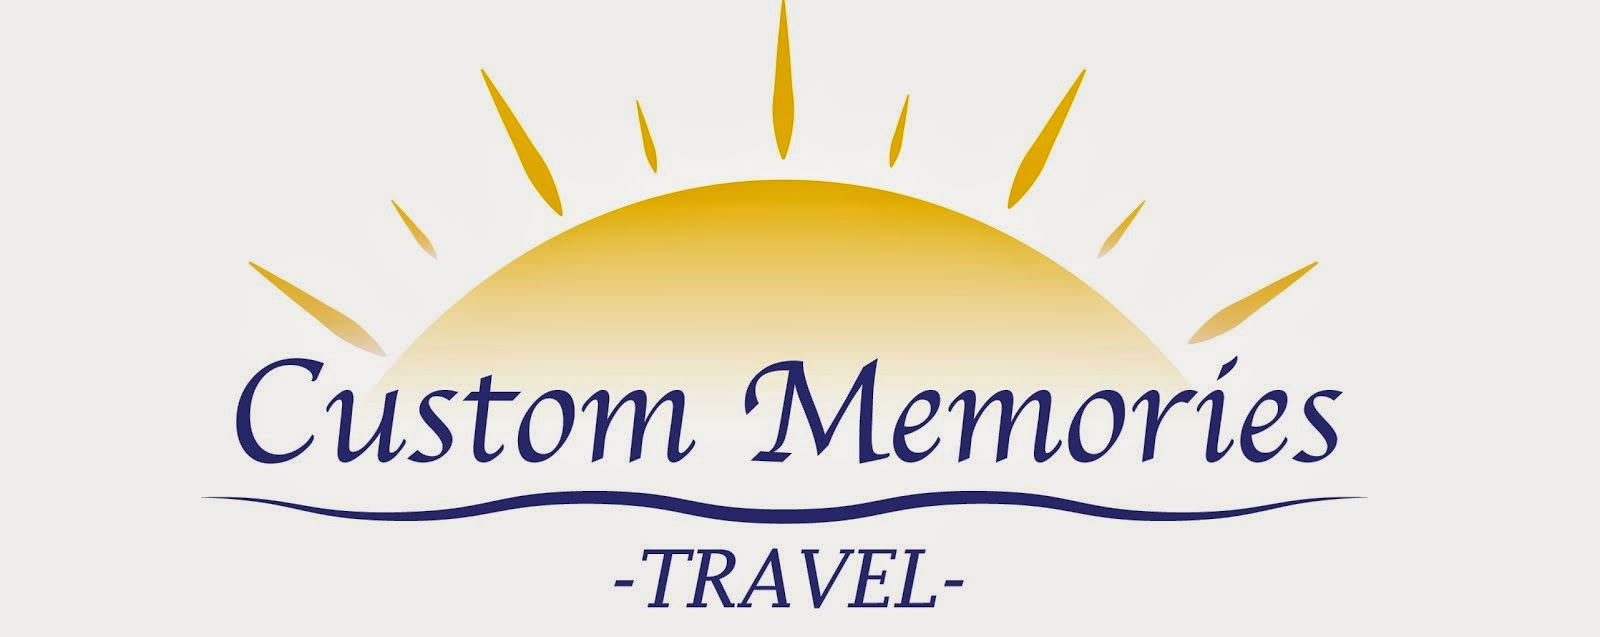 Our Travel Business